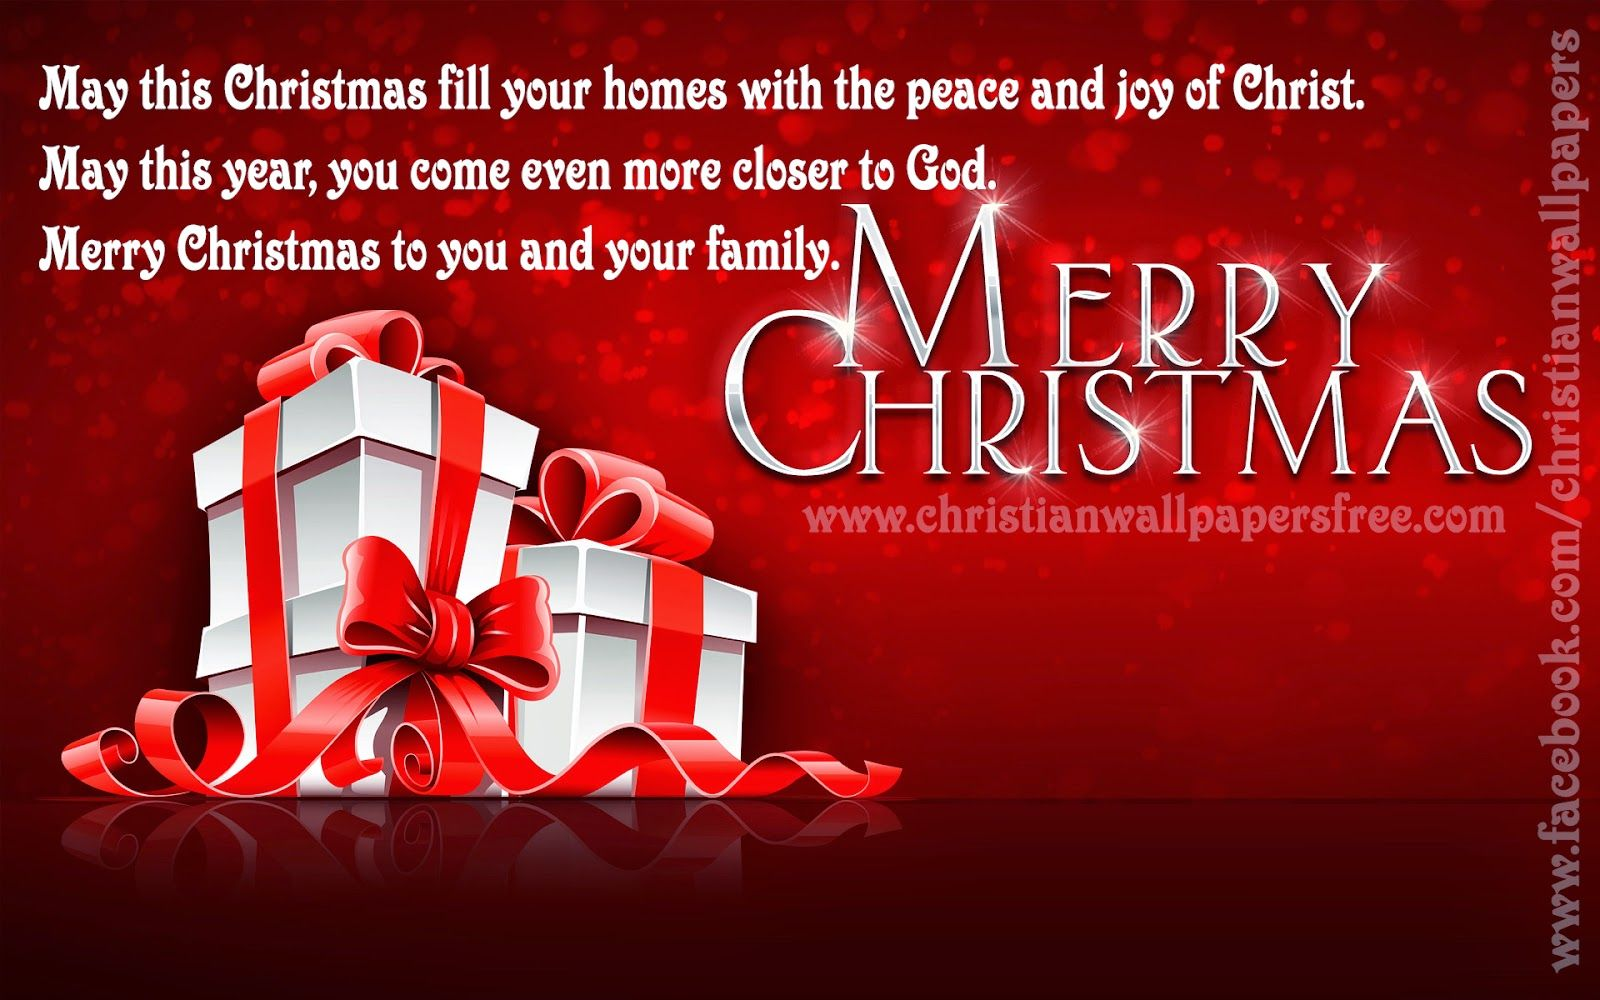 Merry Christmas Family Greetings Card Quotes Bible Pinterest